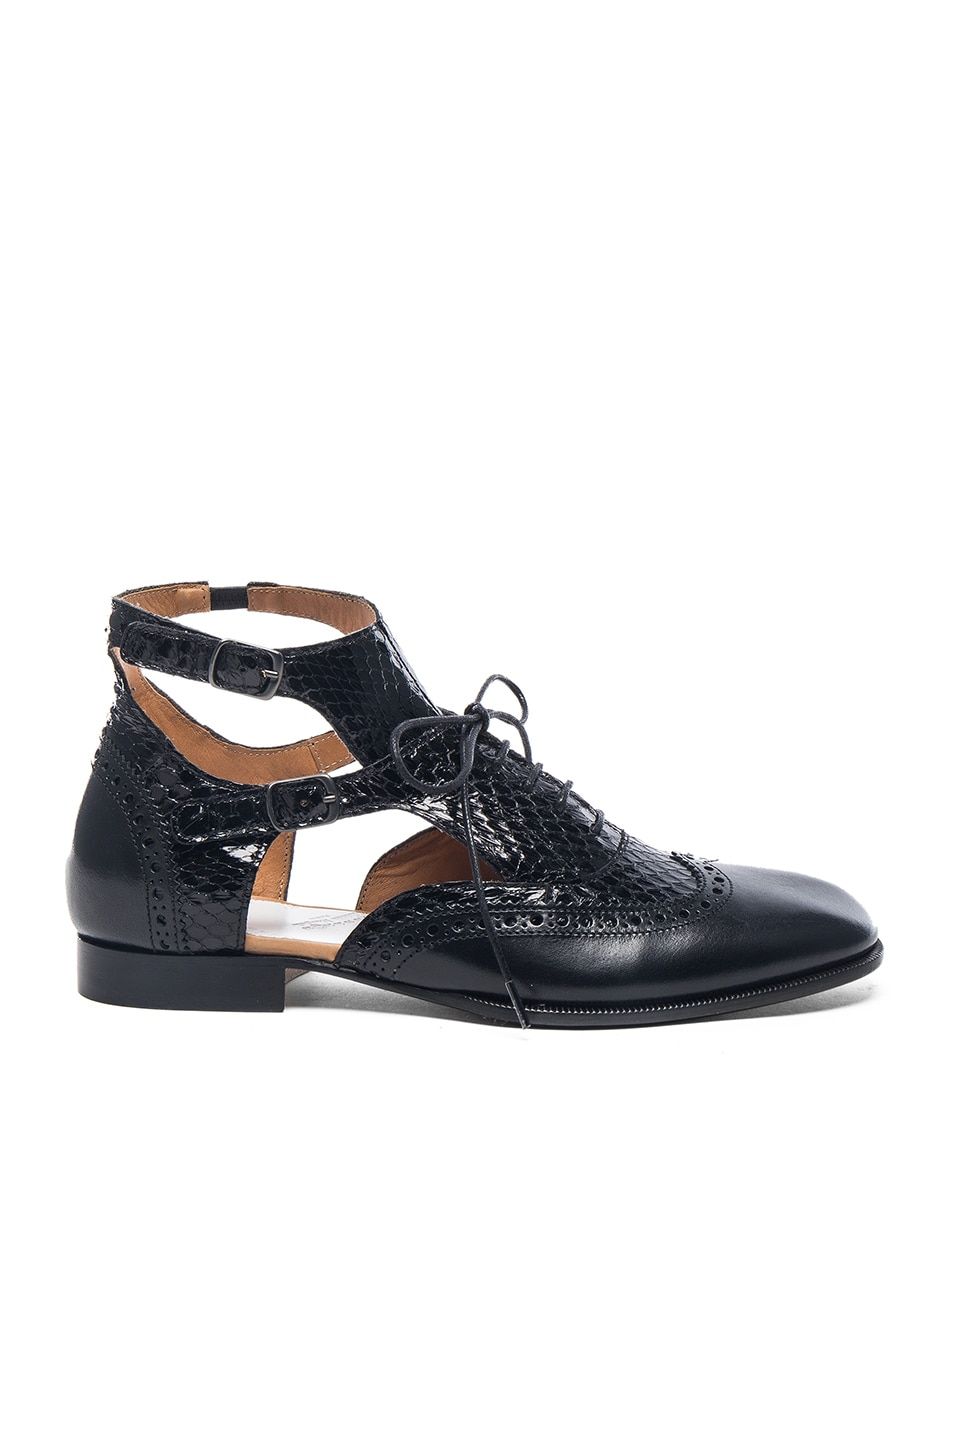 Image 1 of Maison Margiela Cut Out Leather & Python Oxfords in Black